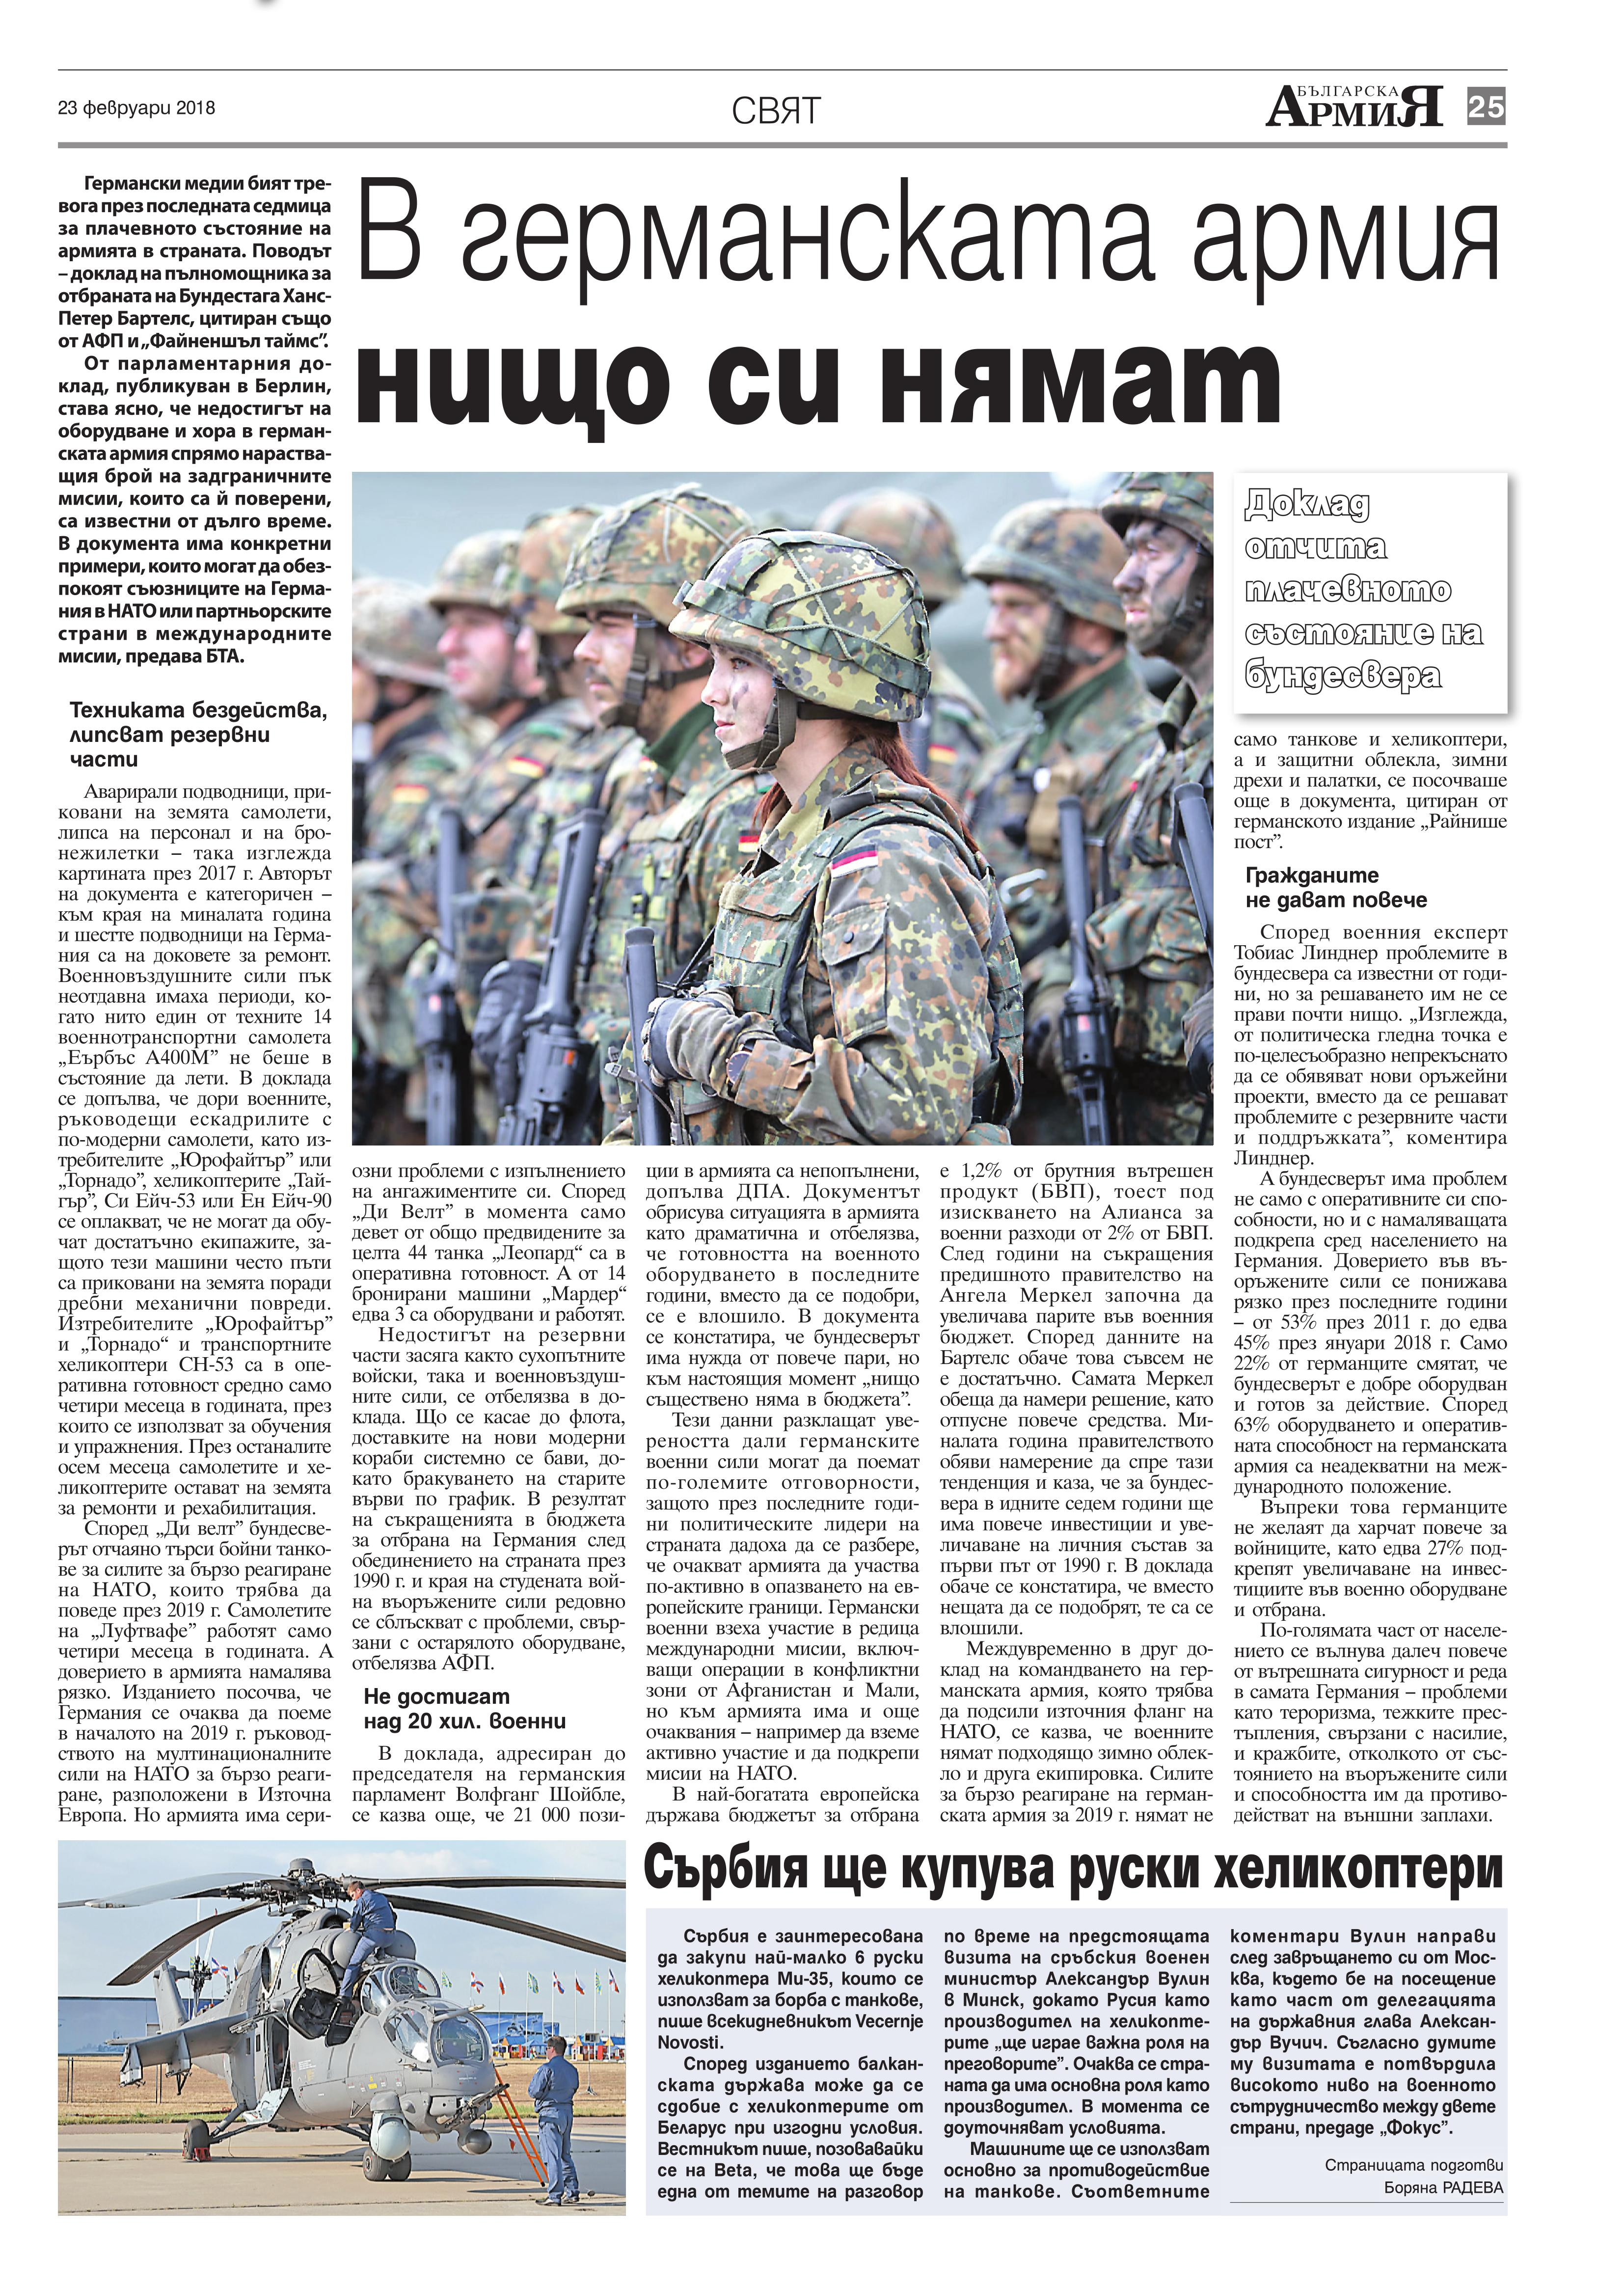 https://armymedia.bg/wp-content/uploads/2015/06/25.page1_-35.jpg